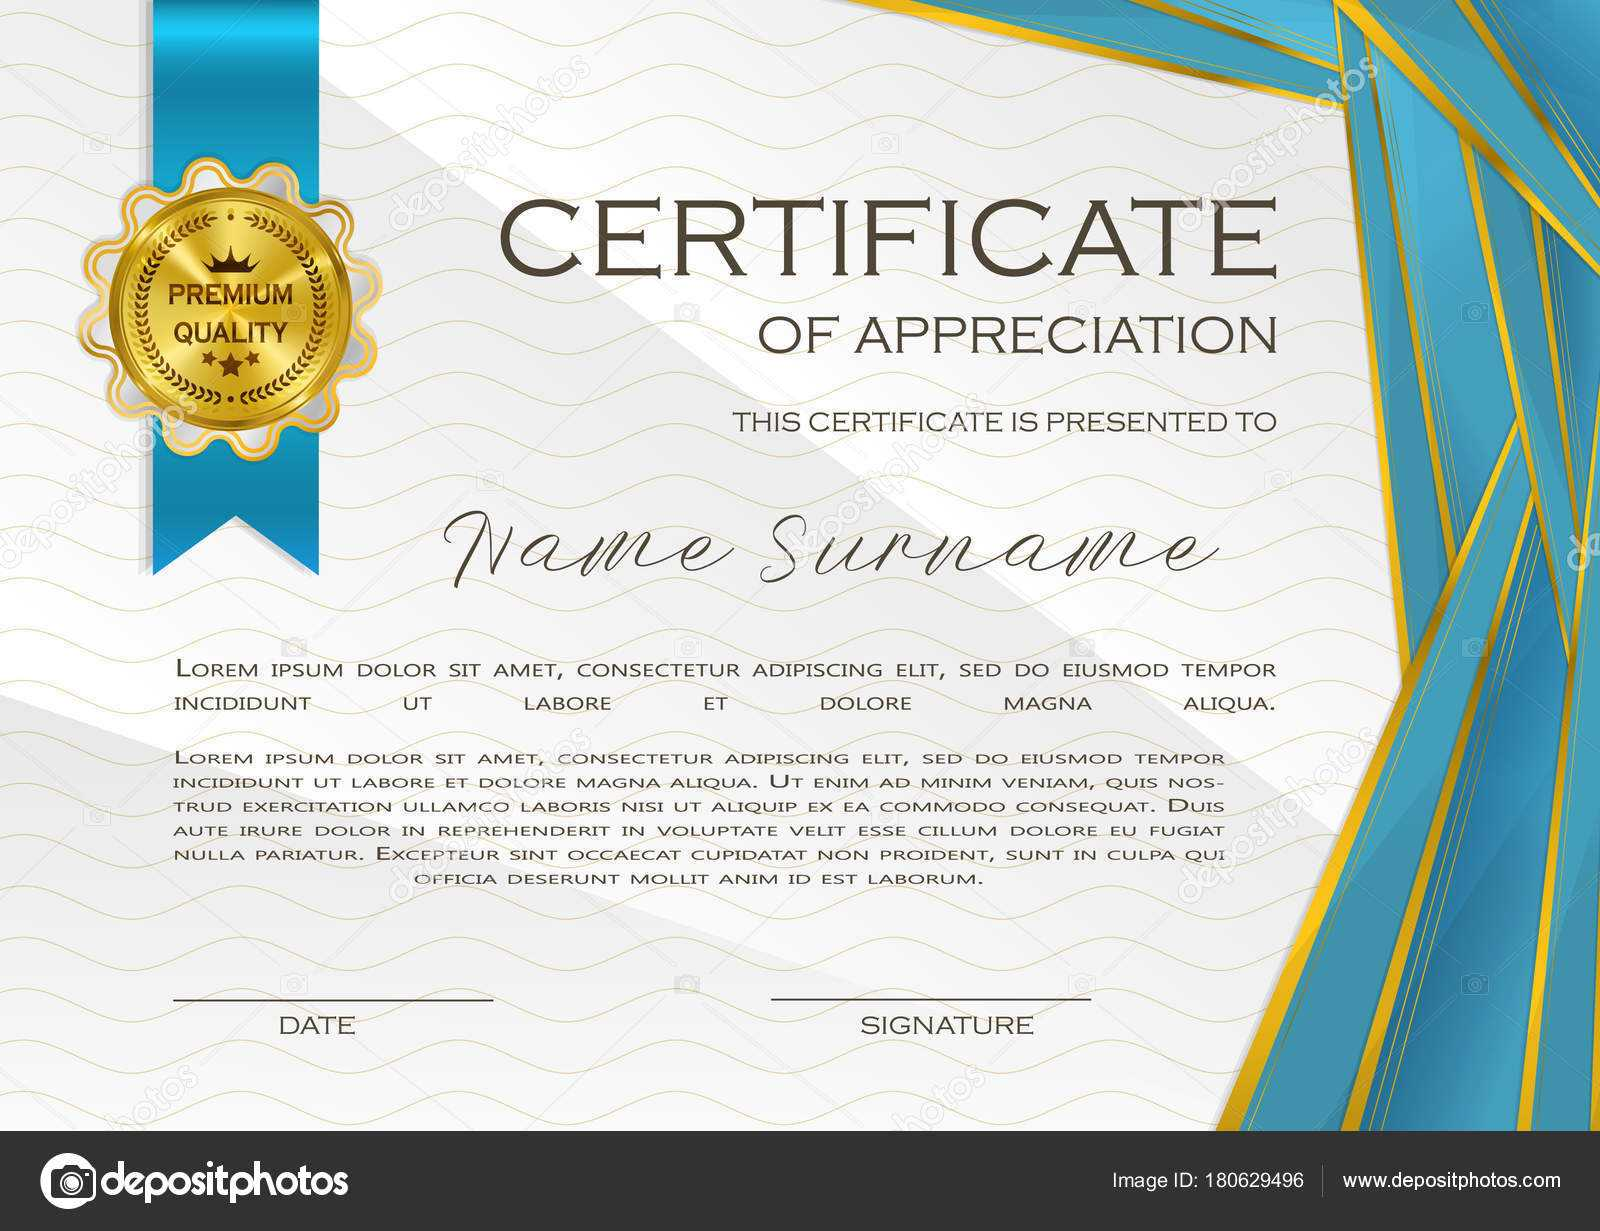 Qualification Certificate Appreciation Design Elegant Luxury With Qualification Certificate Template